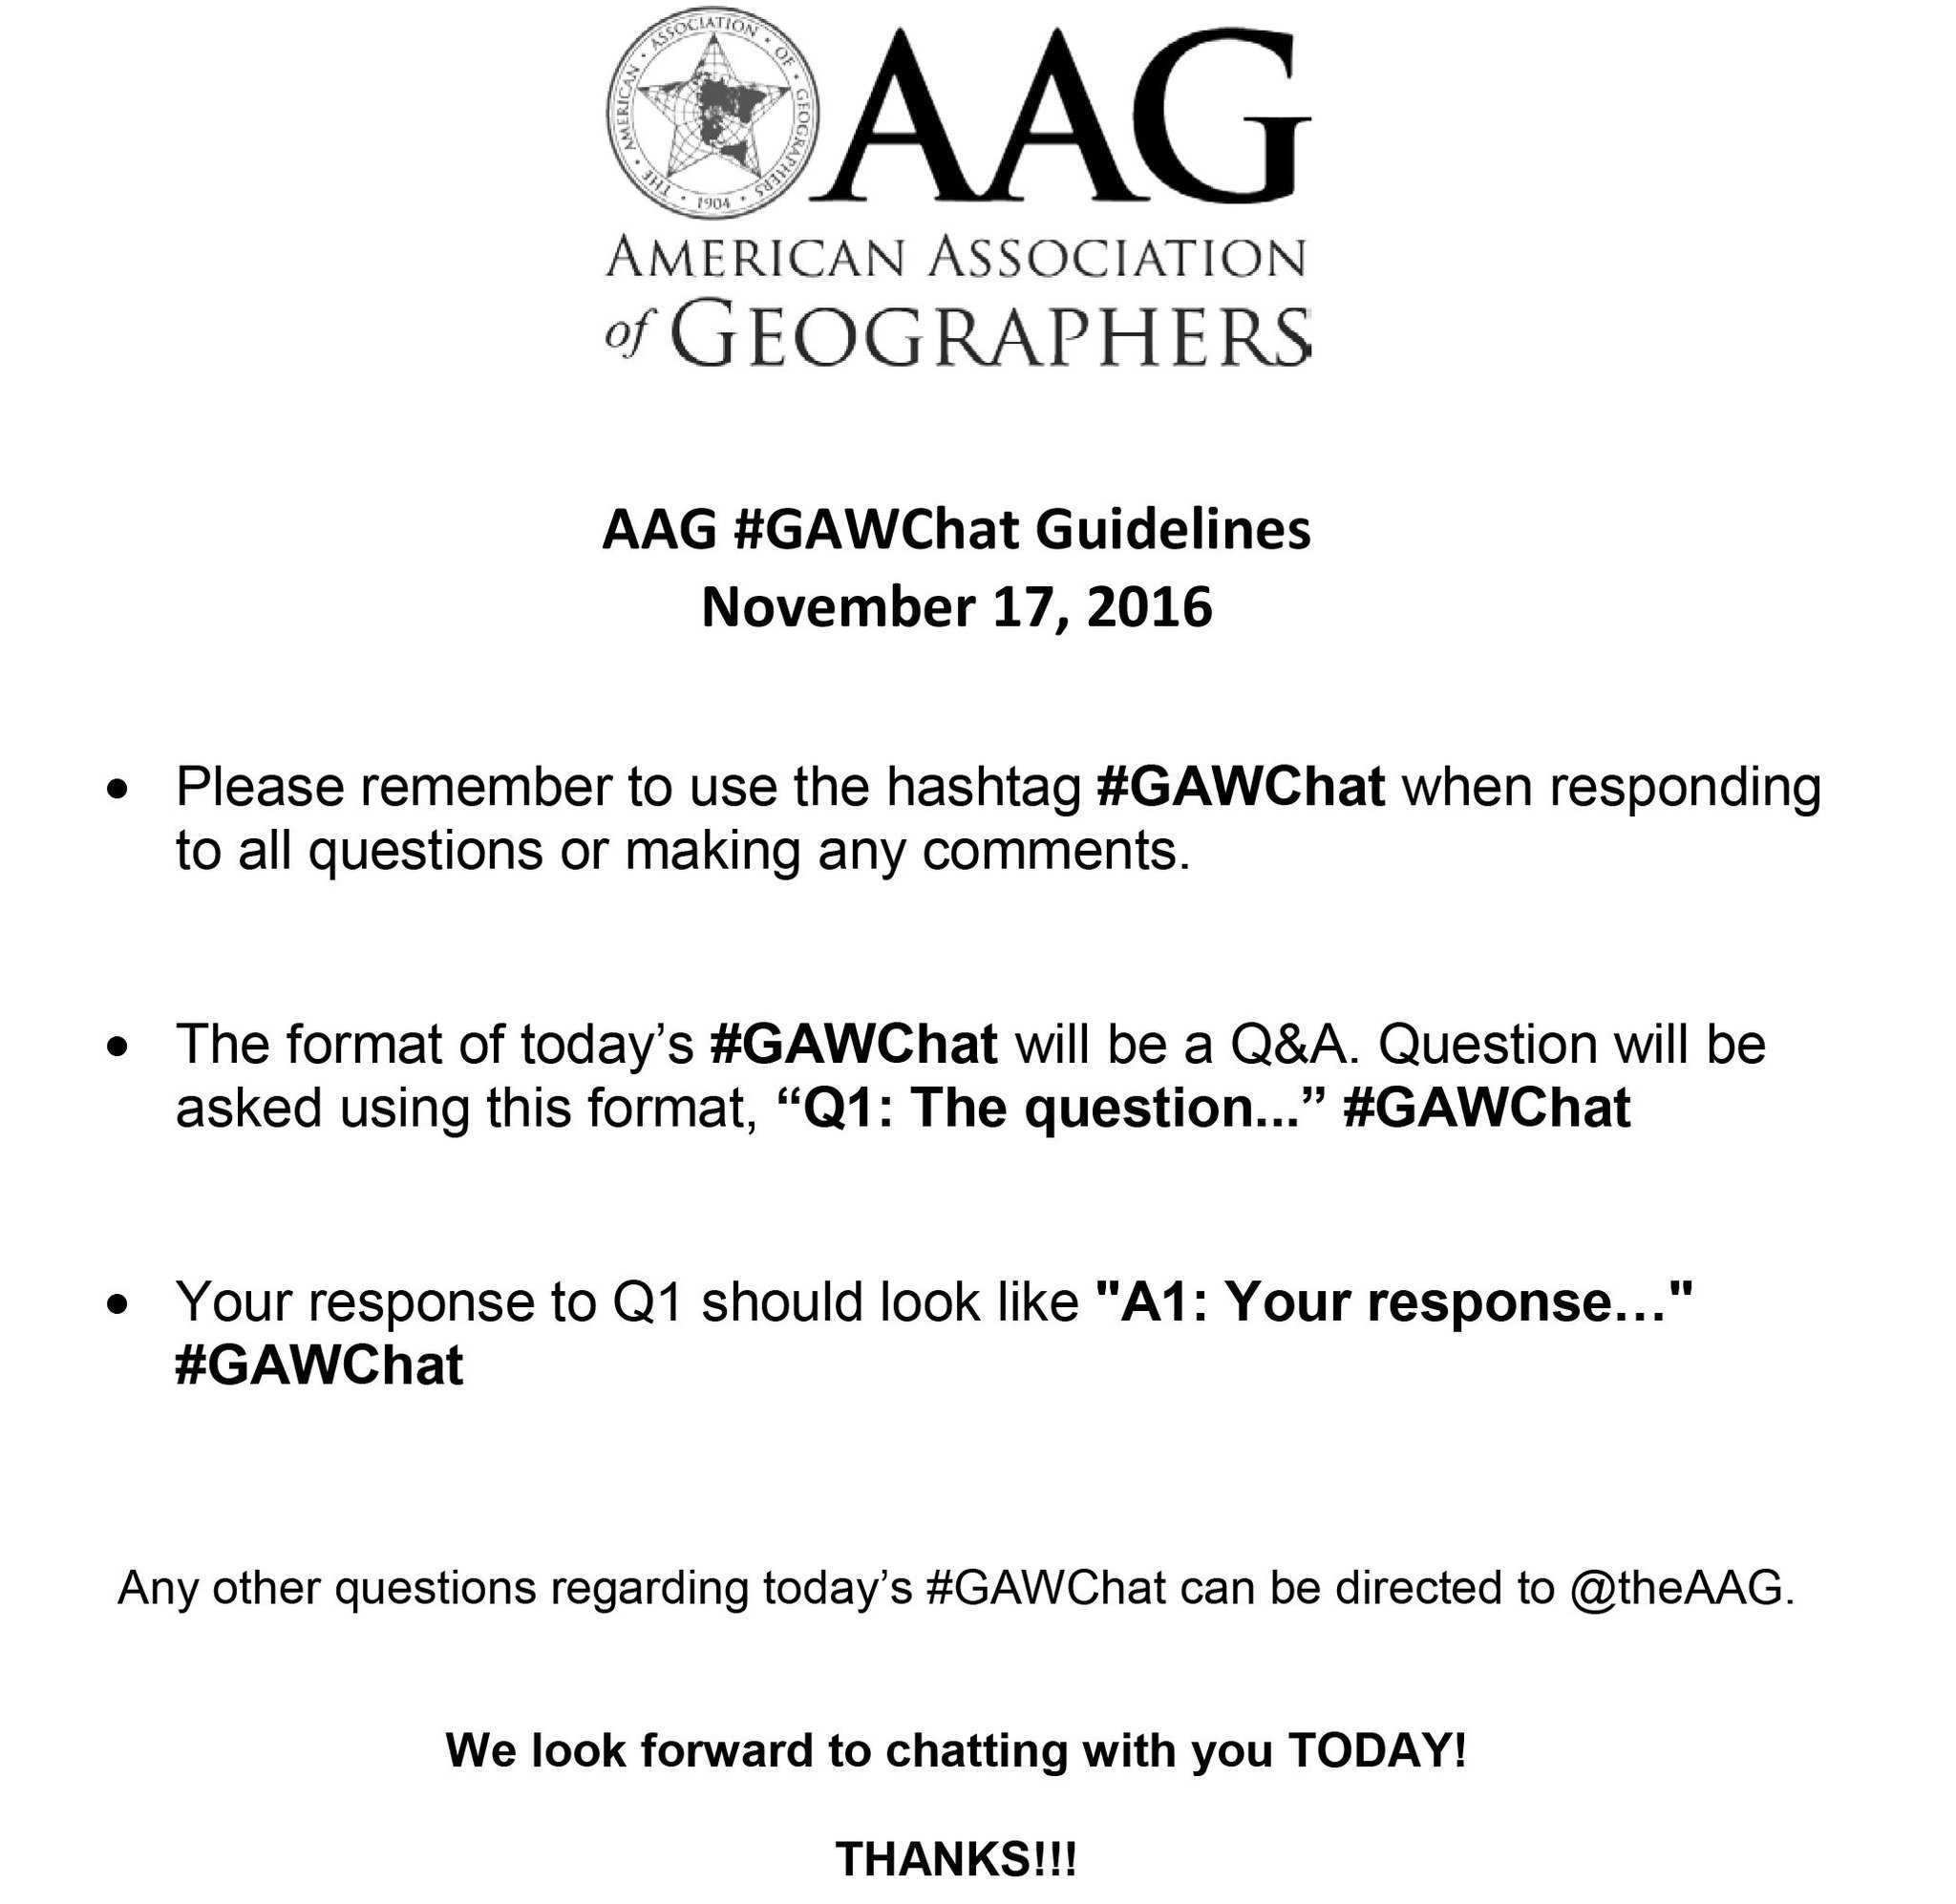 Make sure to set your clocks for today's #GAWChat at 3pm EST! Are you excited to talk about GEOGRAPHY? We are! #GeoWeek https://t.co/C2OFRyDpnY